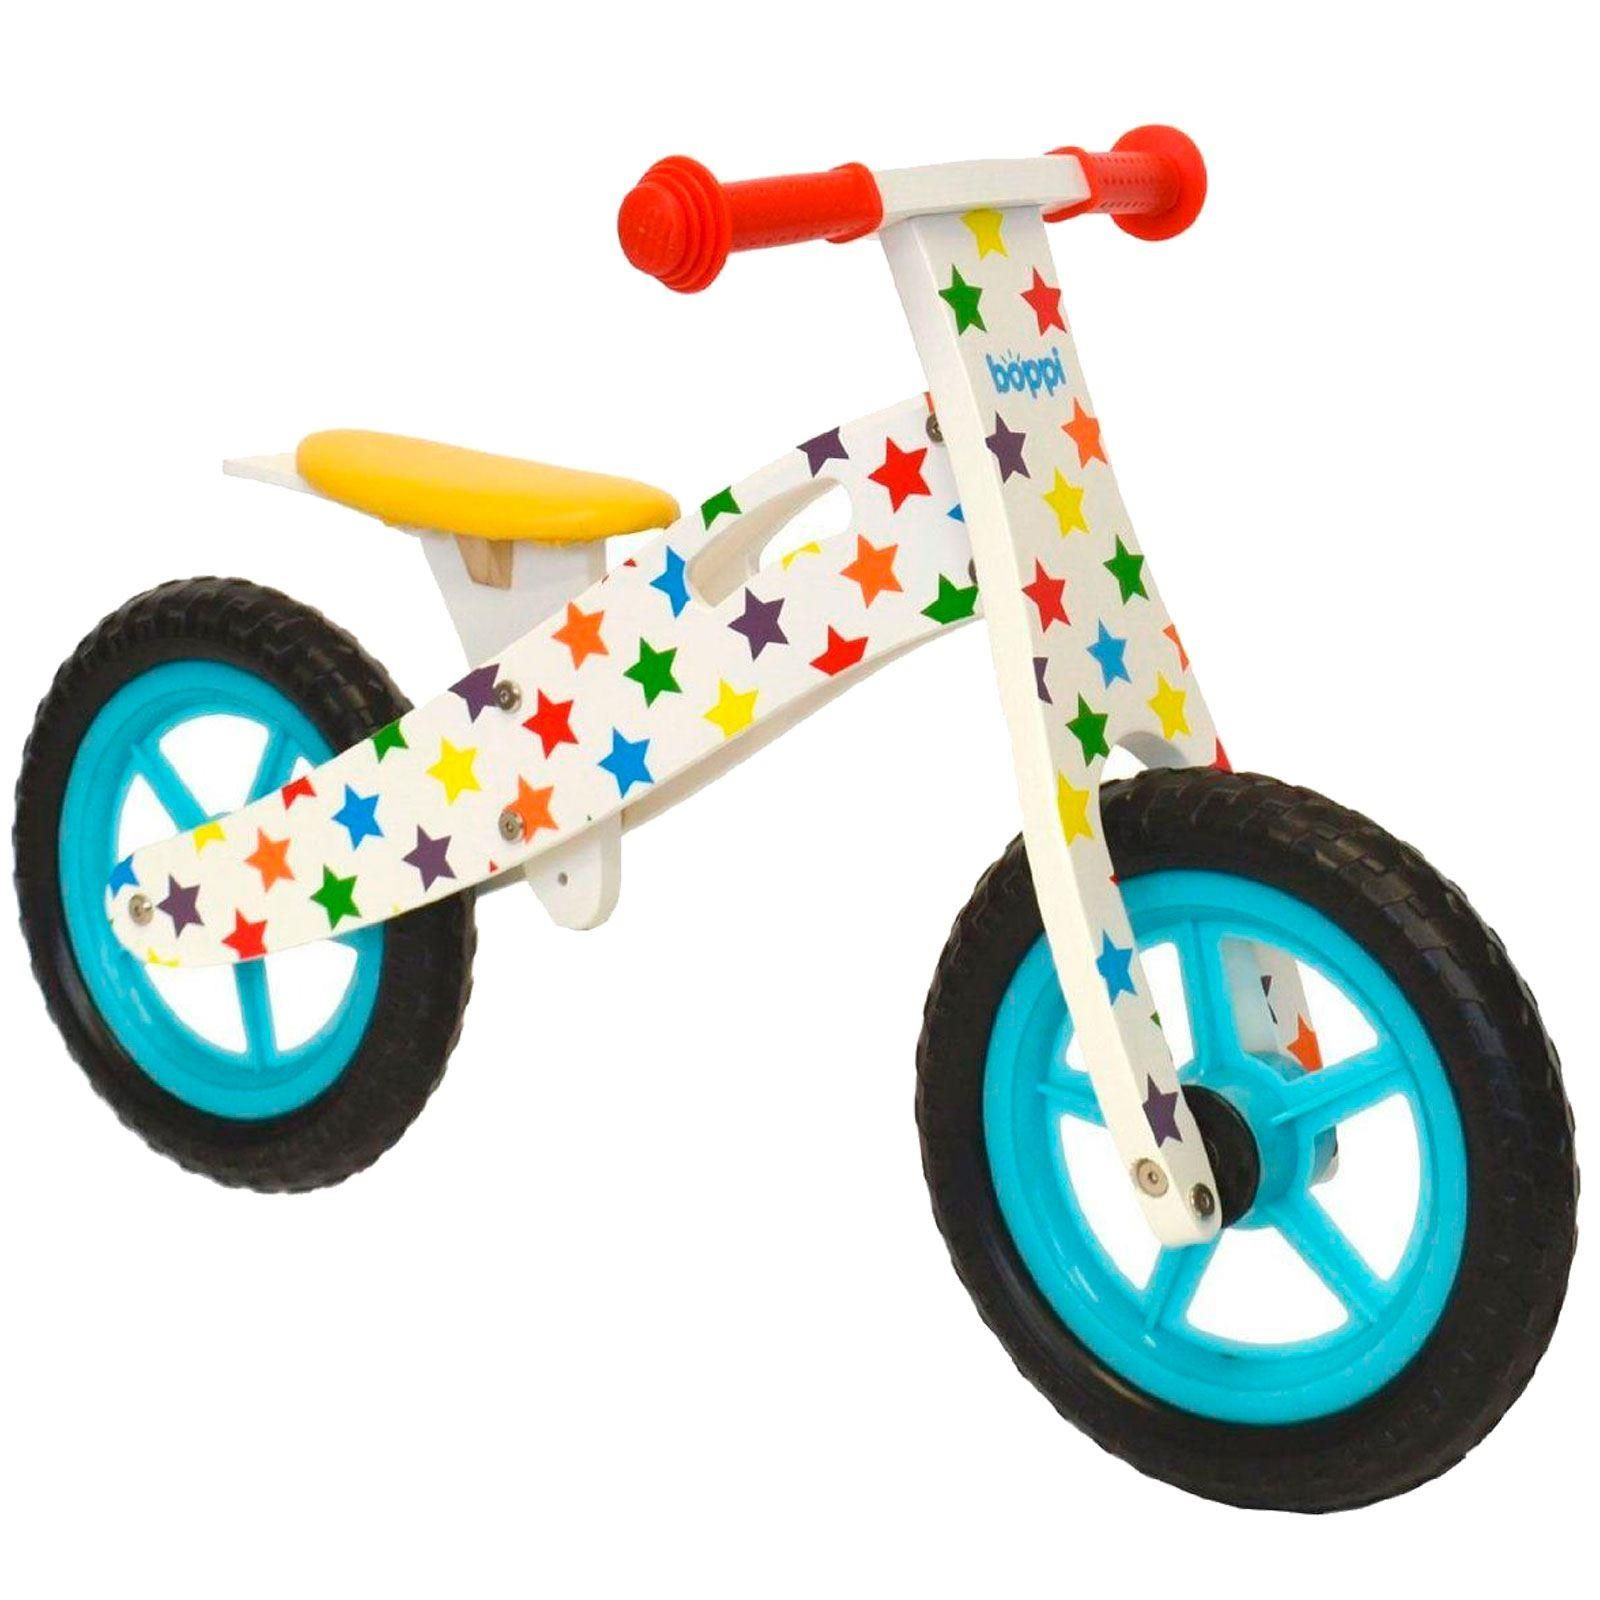 boppi® Wooden Balance Training Bike - Stars bopster